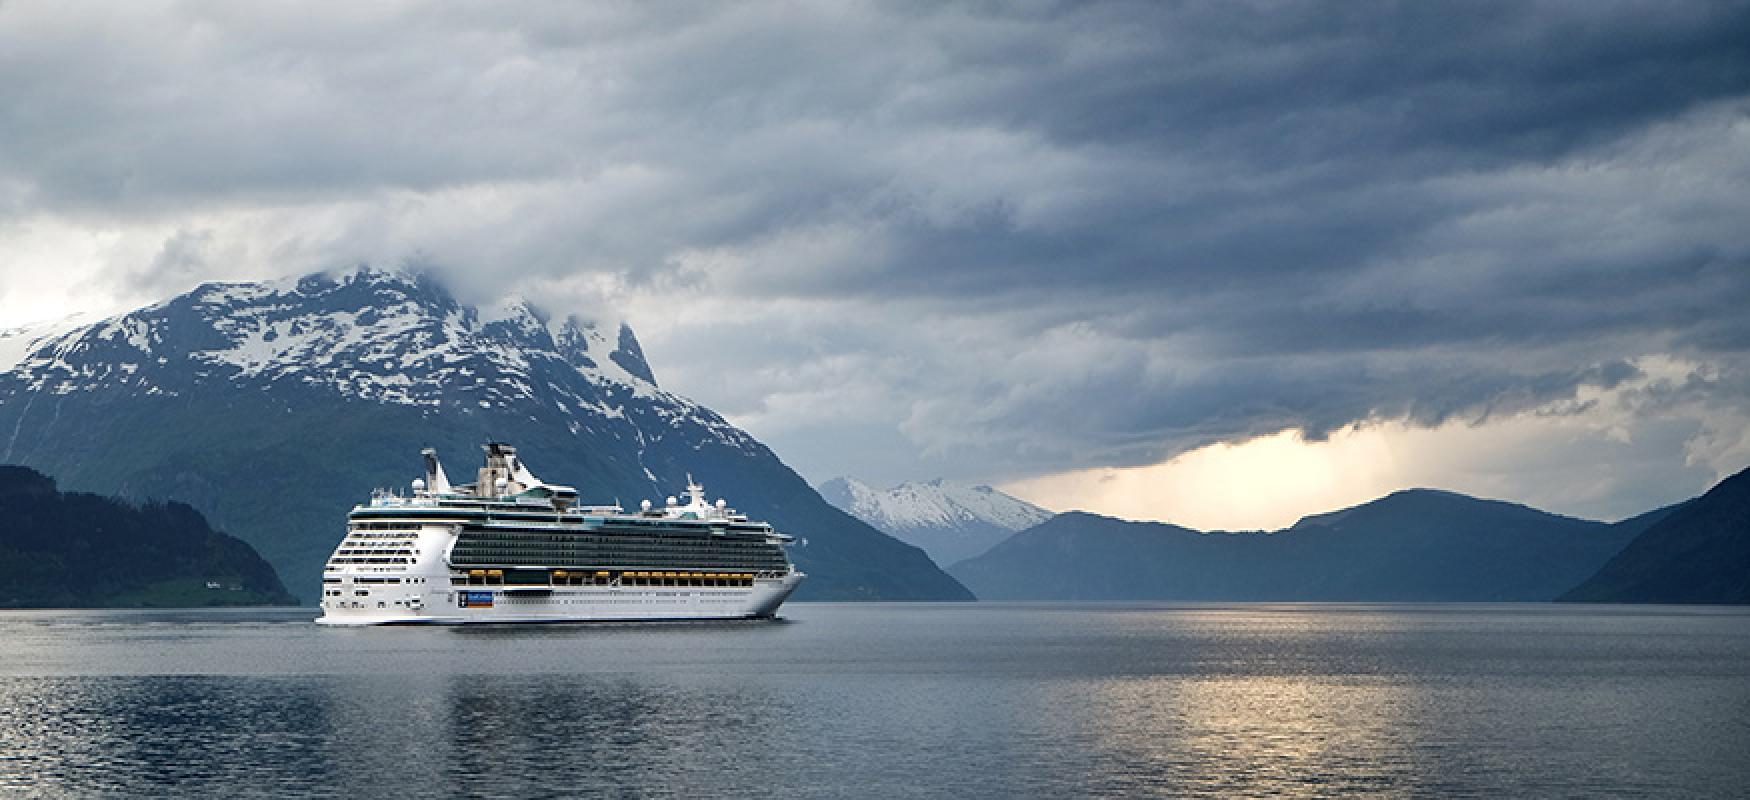 Cruise ship in a fjord.